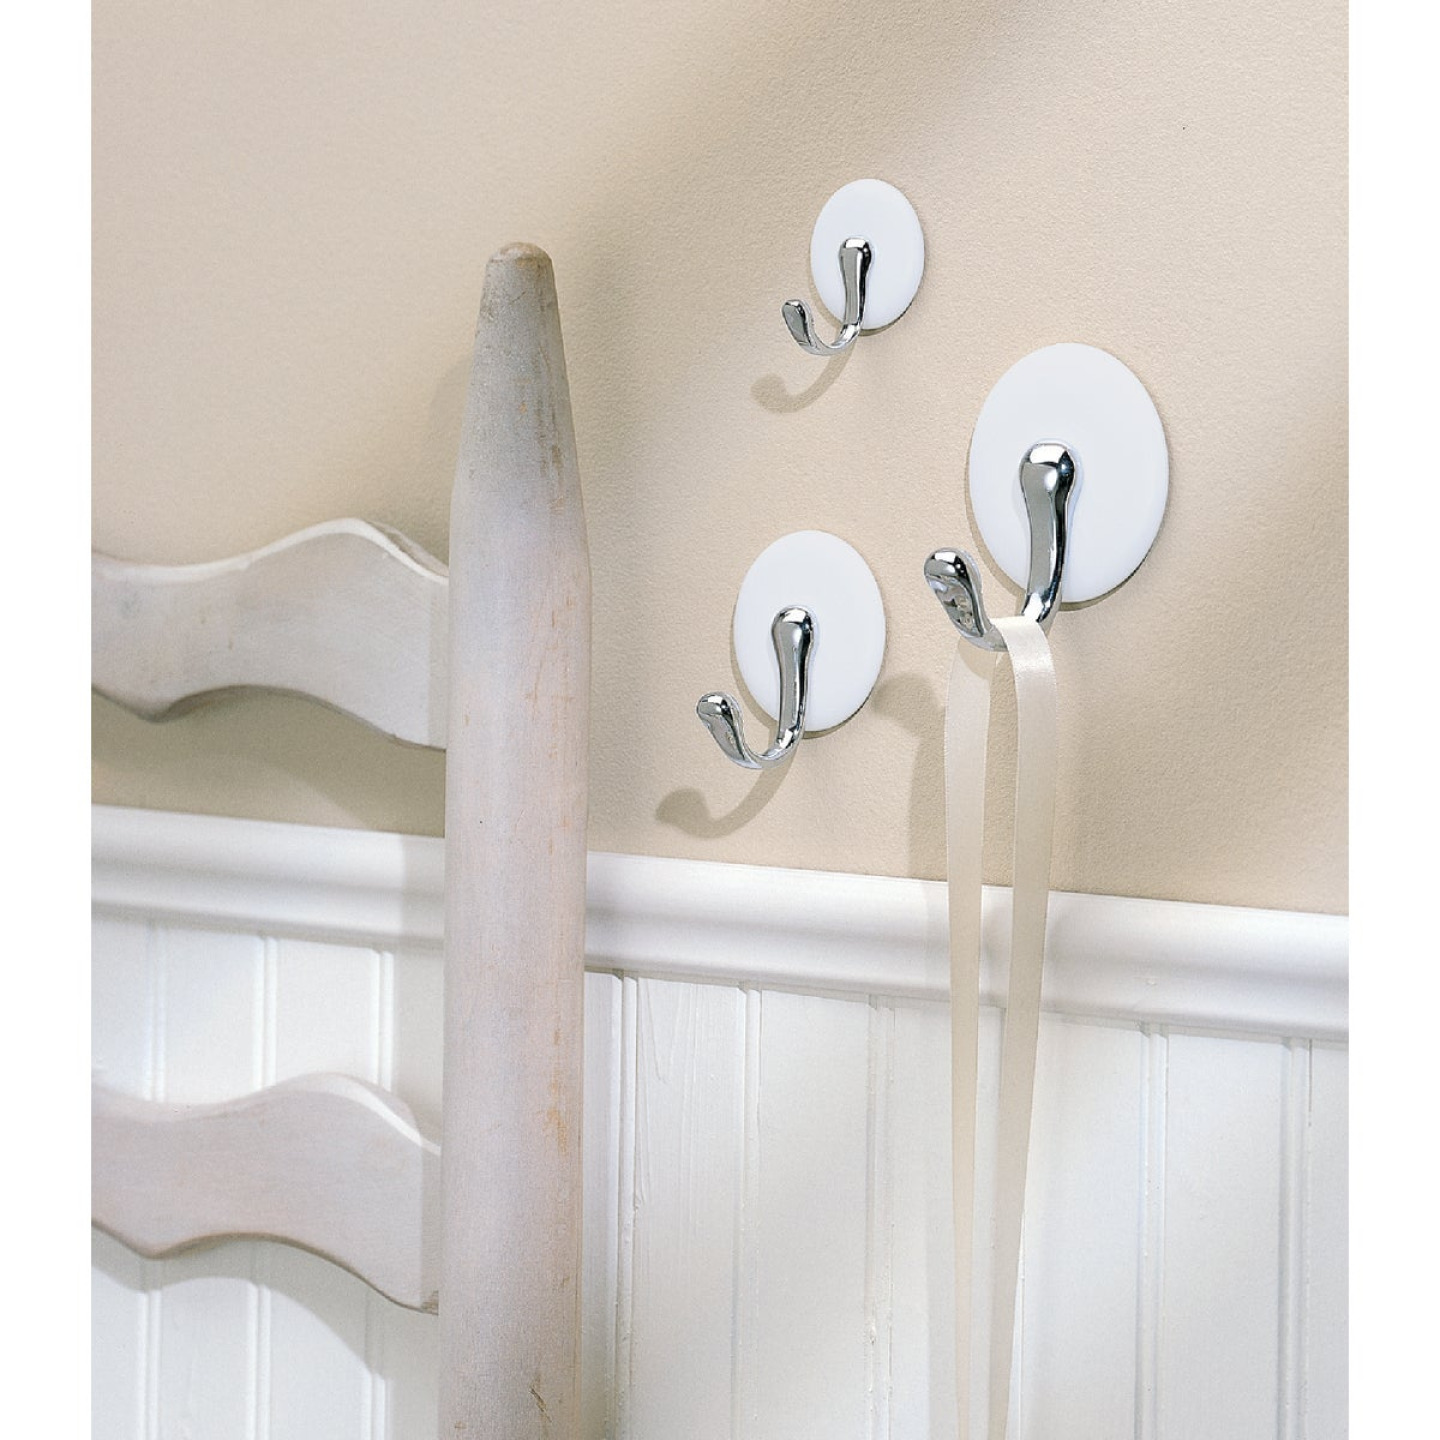 InterDesign Forma York White & Chrome Adhesive Hook Image 2